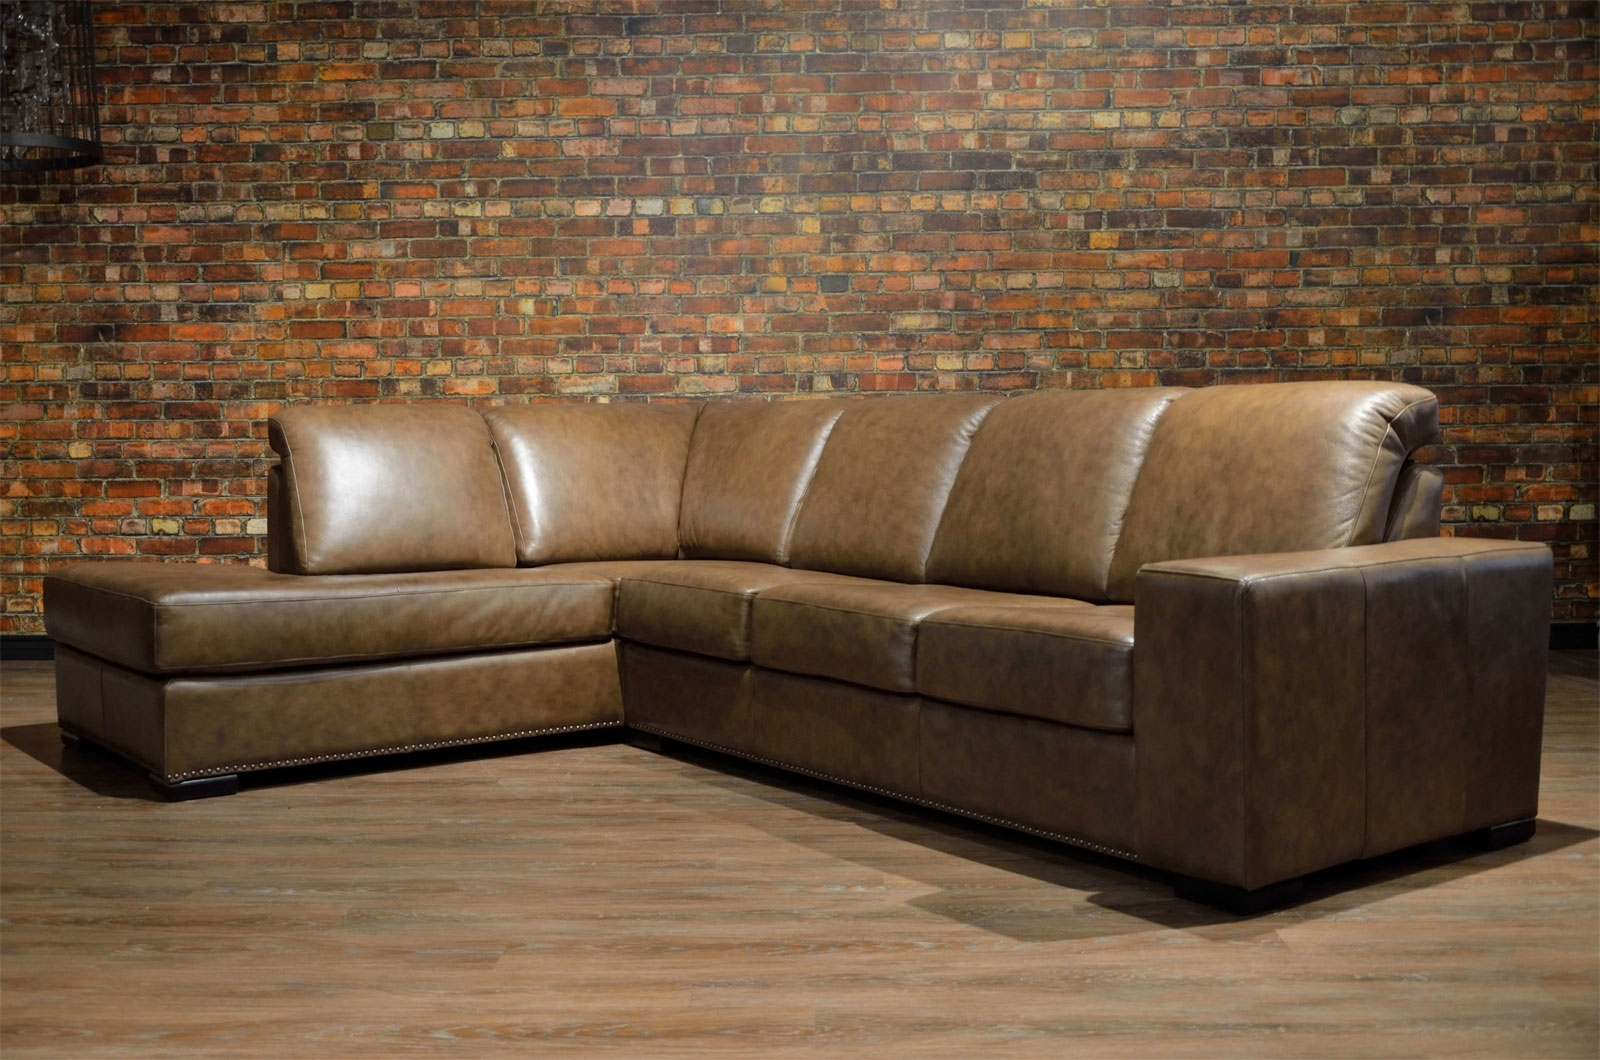 Toronto S Premier Custom Leather Sofas Made In Canada Gallery 15 Of 20